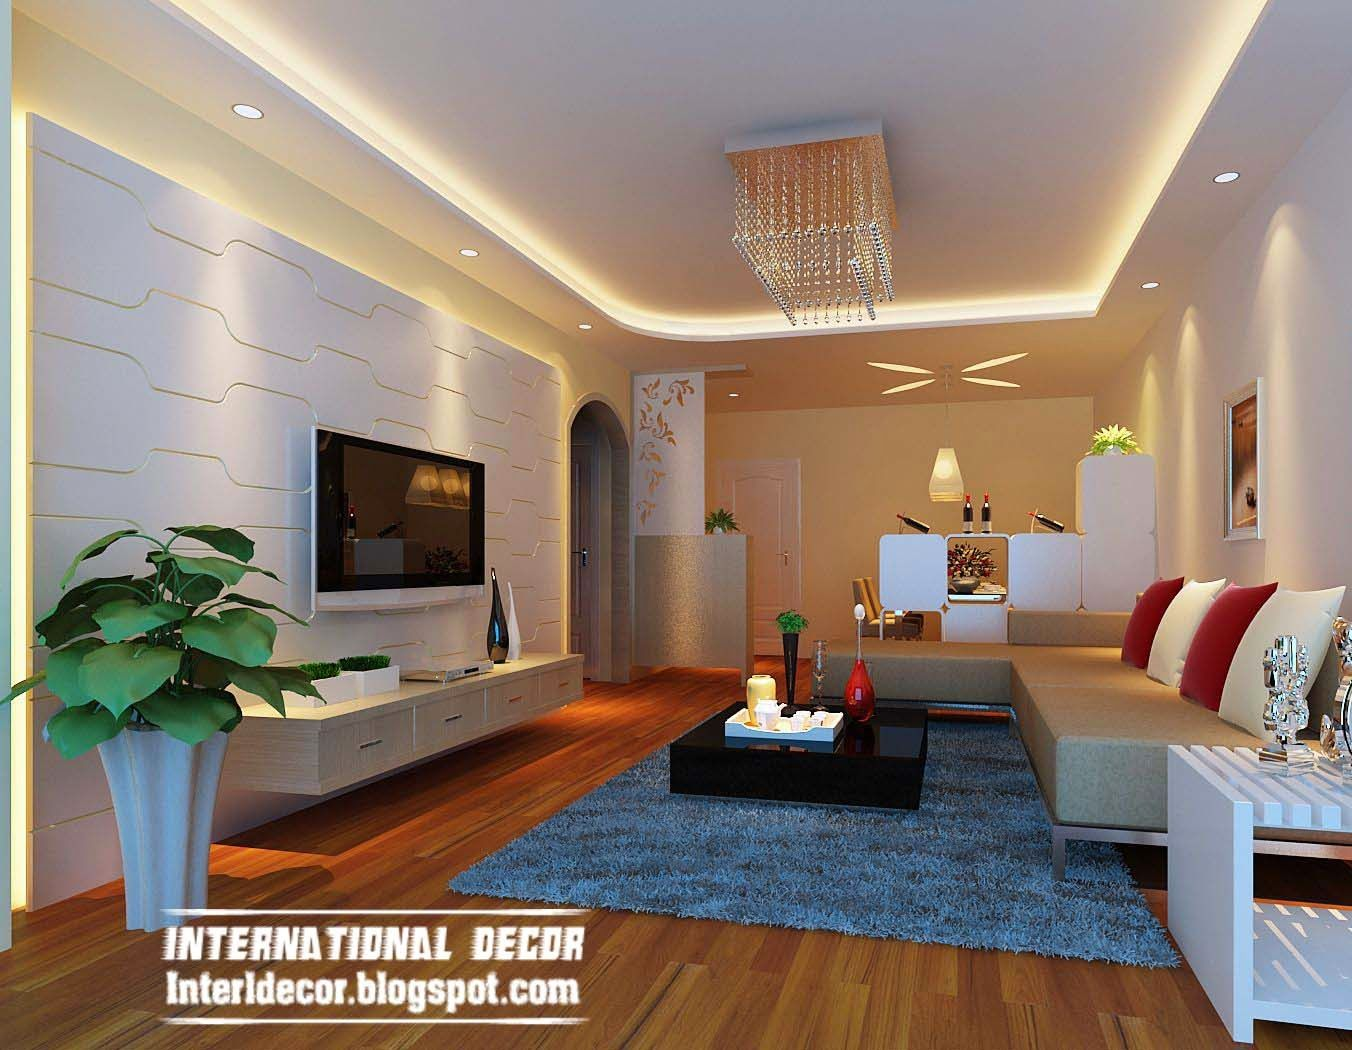 Suspended ceiling pop design lighting for living room for Wall ceiling pop designs